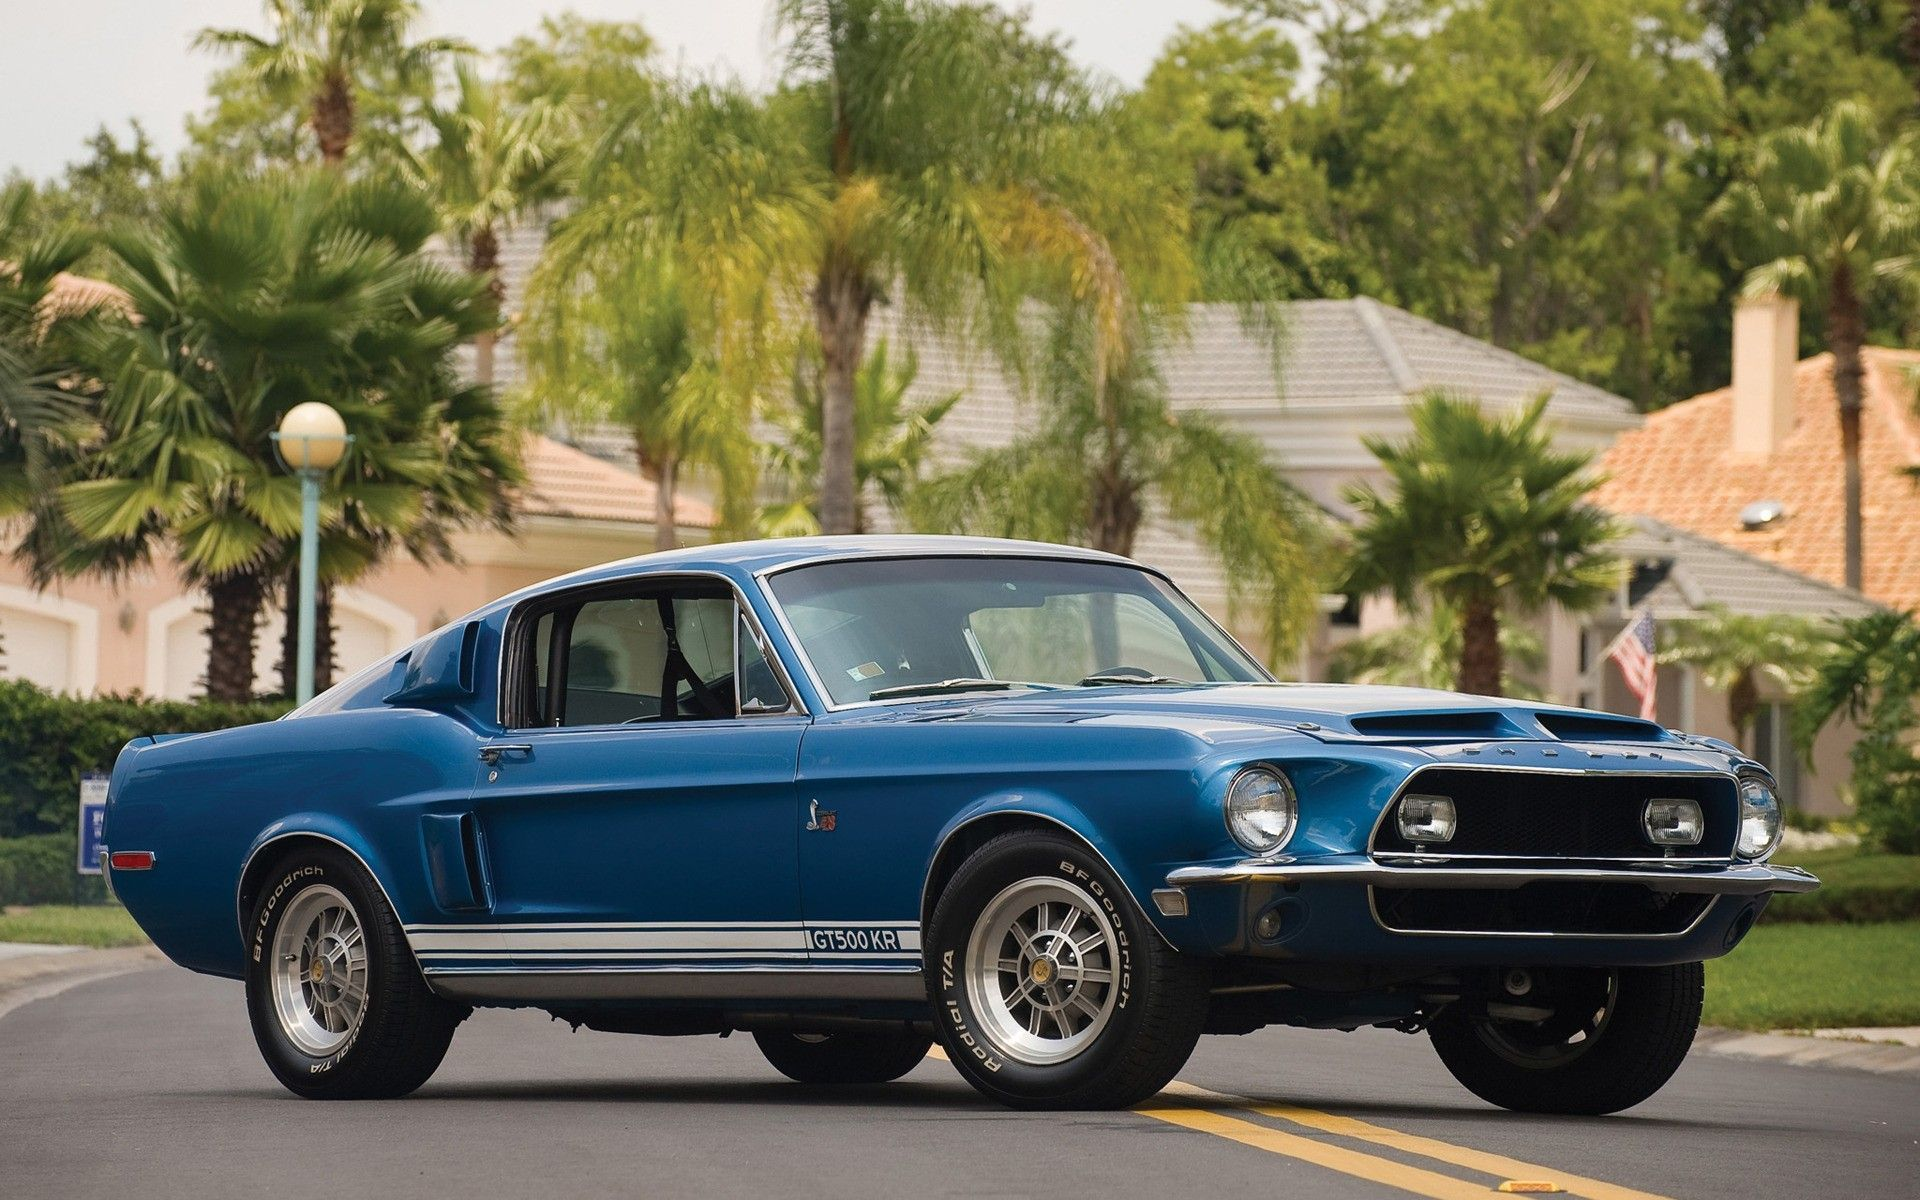 1968 Ford Mustang Shelby Gt500kr Ford Mustang Ford Mustang Shelby Ford Mustang Shelby Gt500